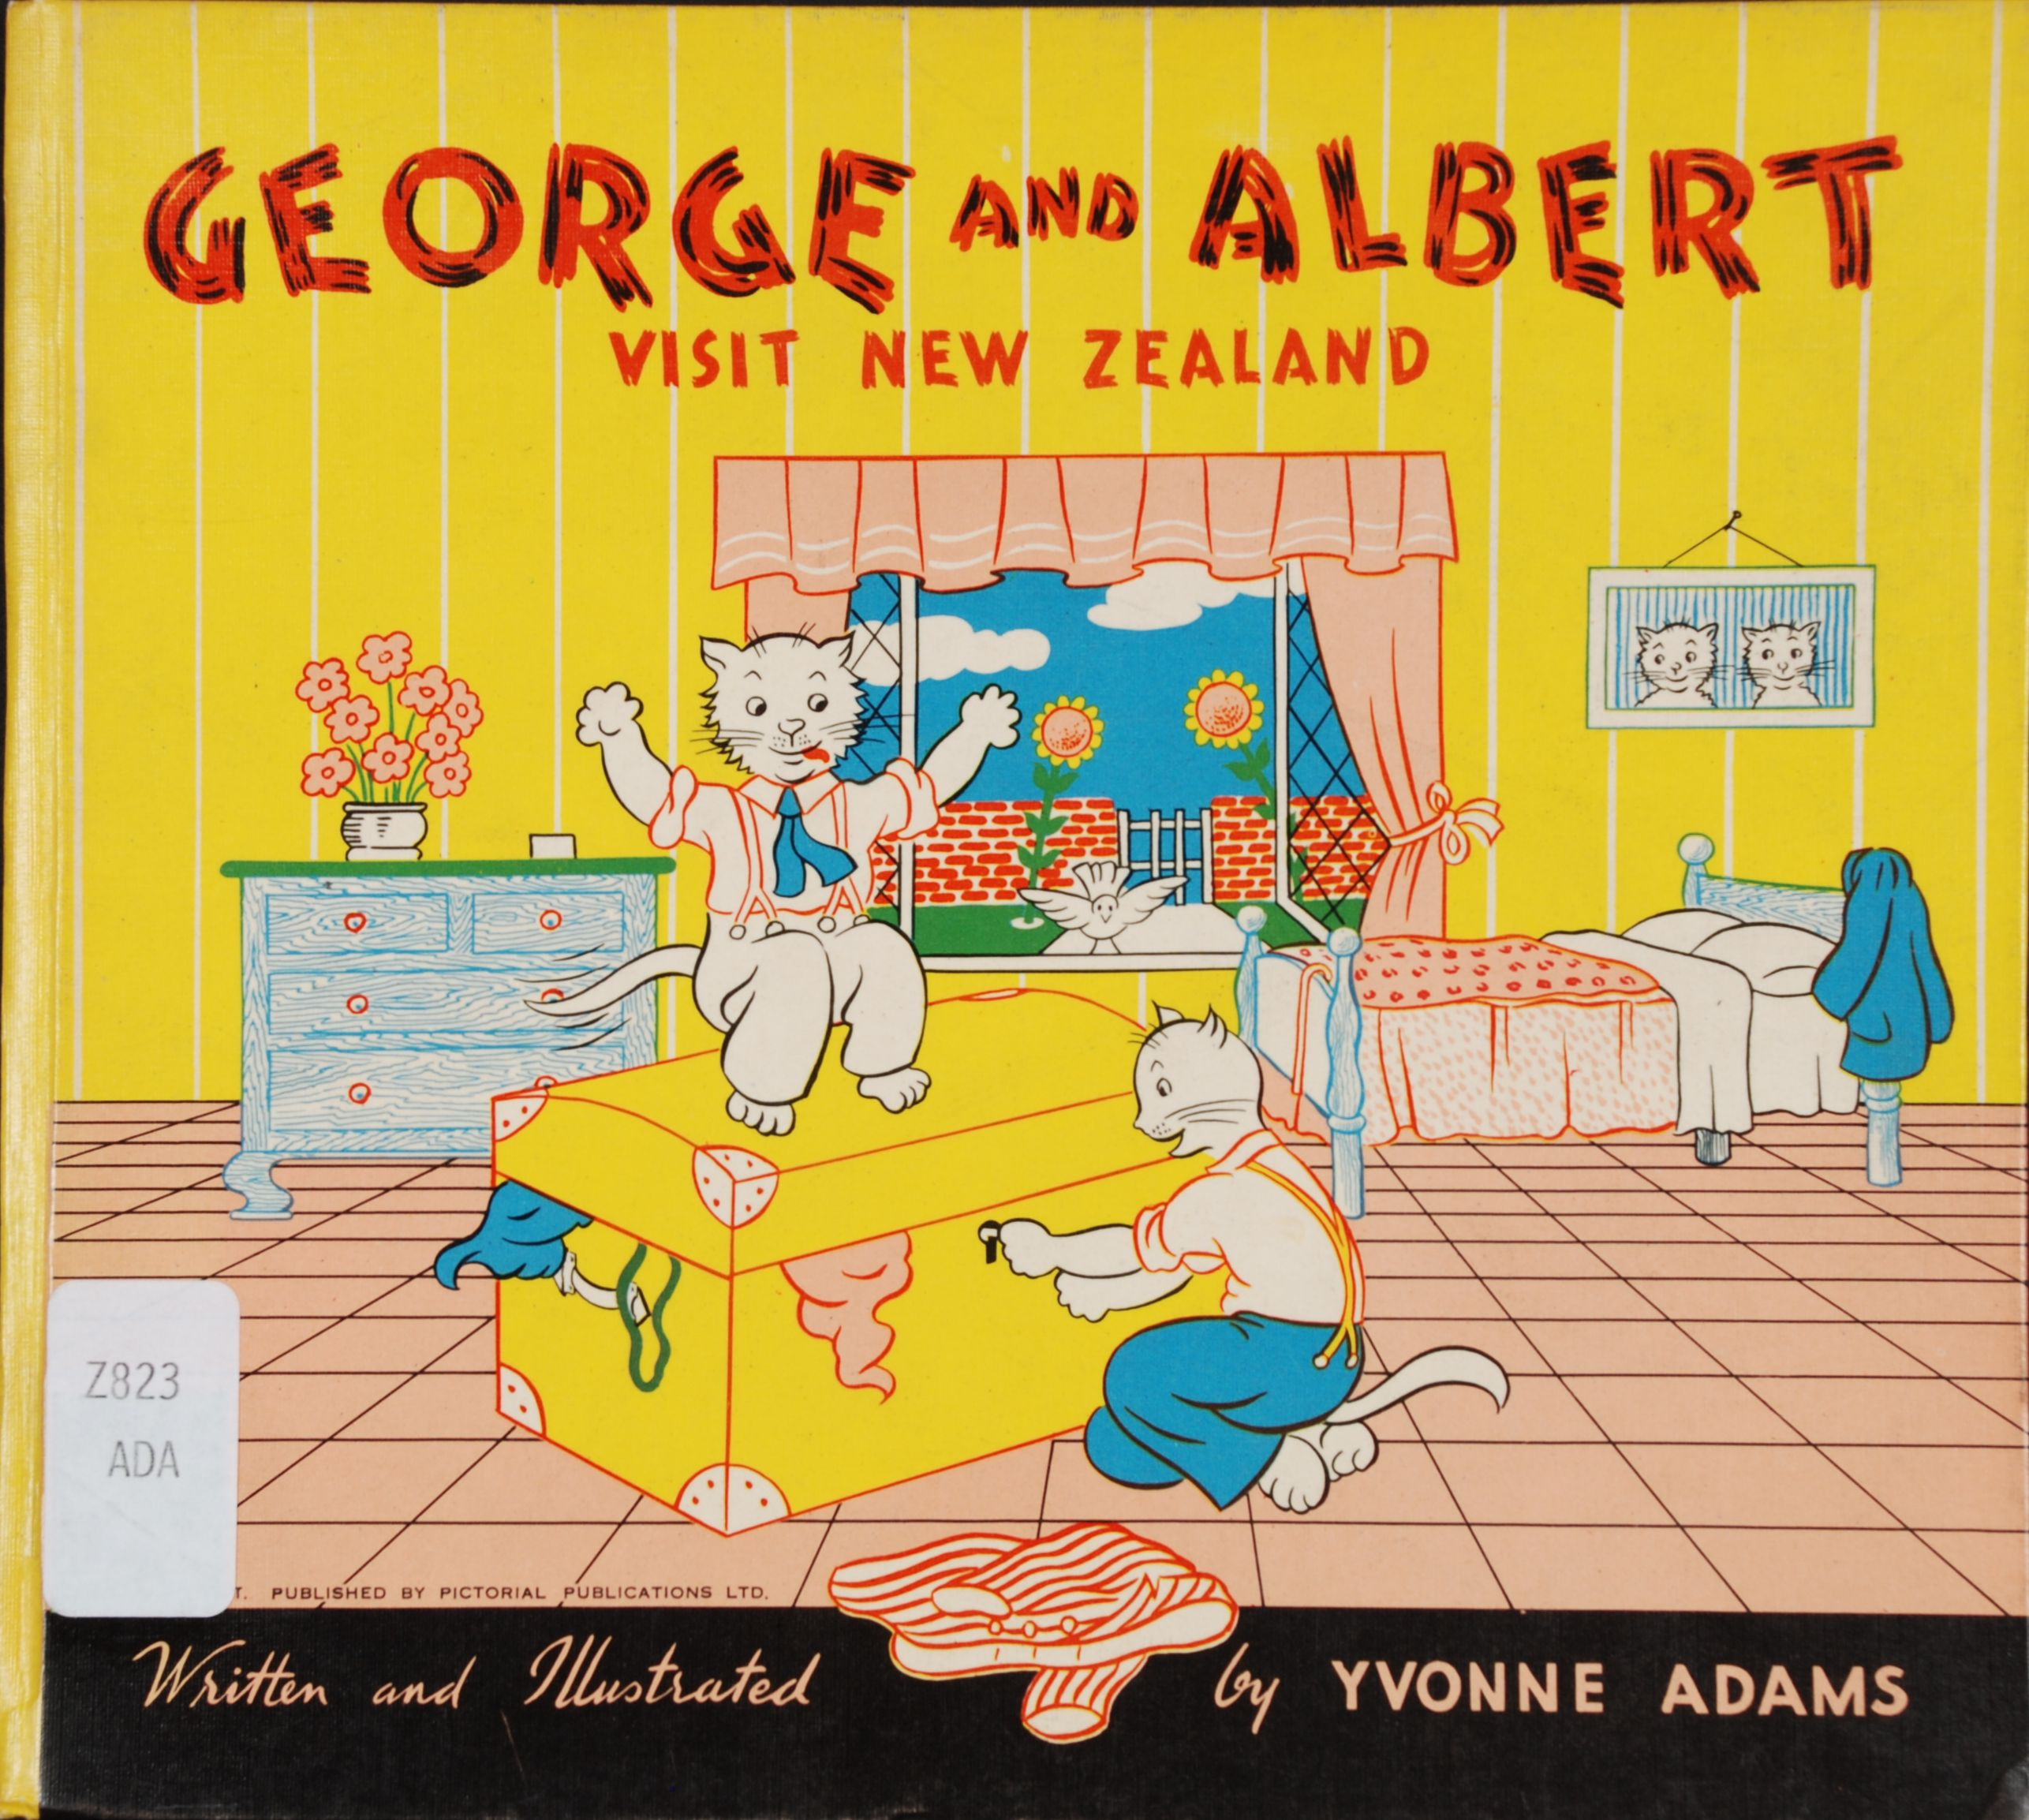 Yvonne Adams. George and Albert Snowywhiskers pay a visit to New Zealand. Hastings, N.Z.: Pictorial Publications, [1952].